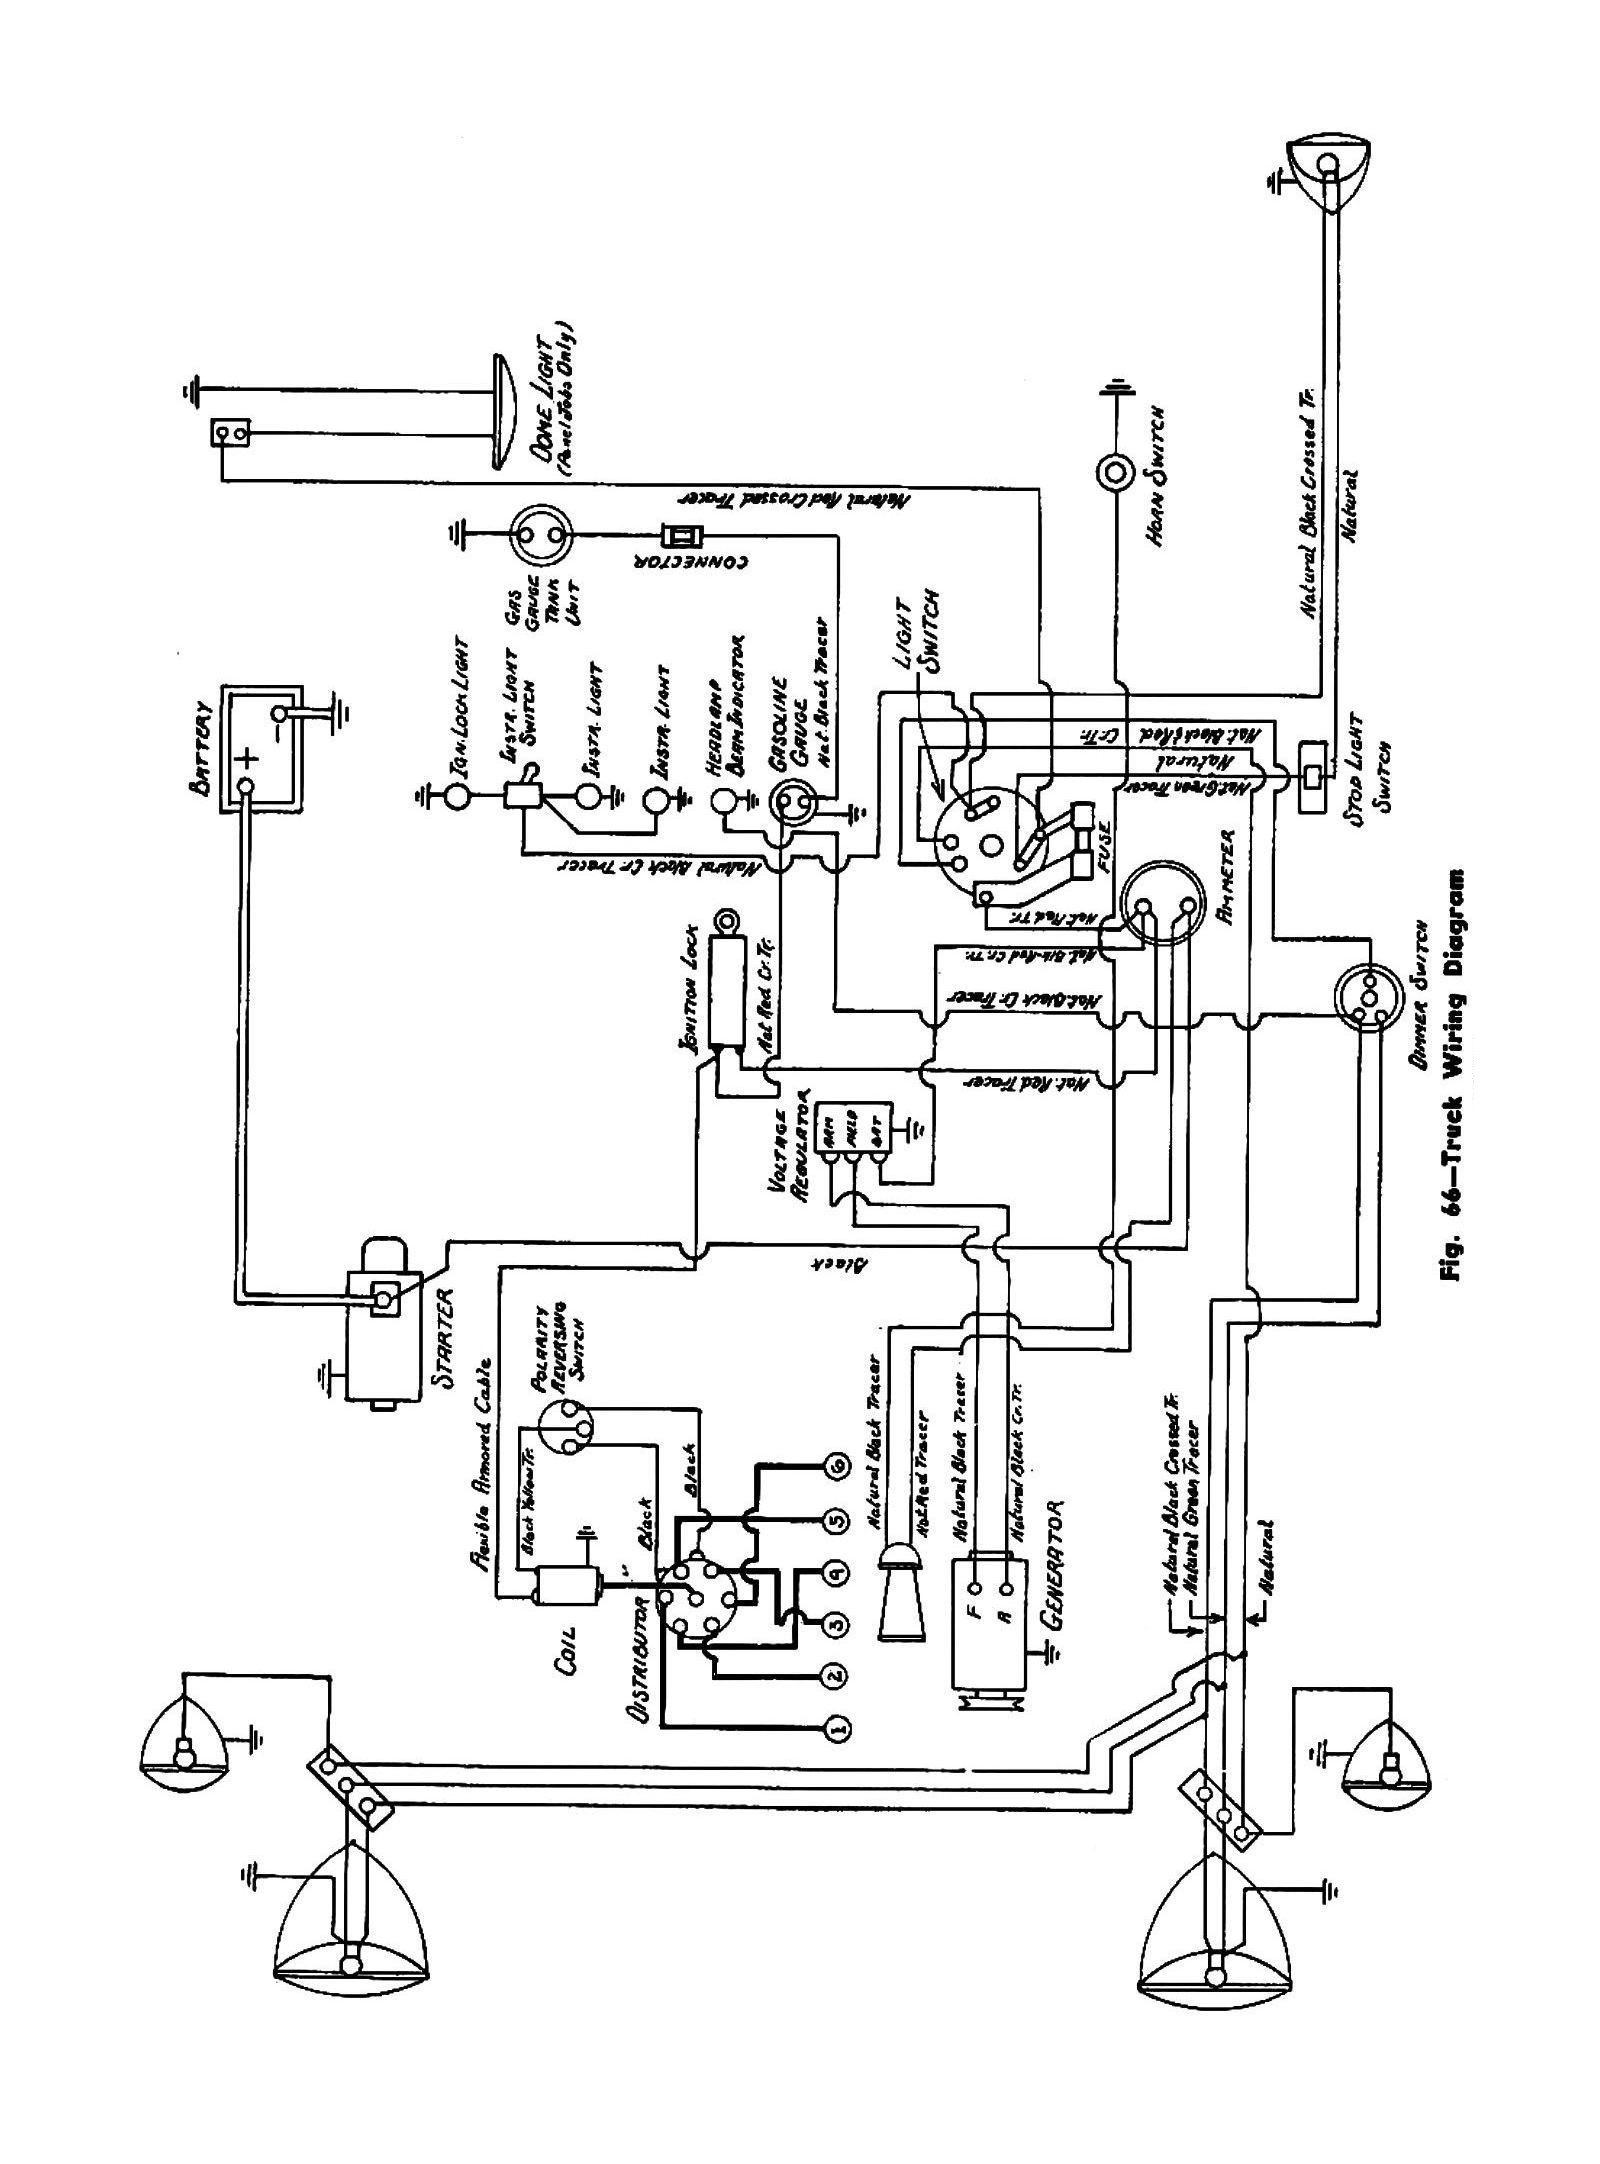 Wiring Diagrams For Trucks Ford Truck Technical Drawings And Schematics Section H Substation Of Related Post